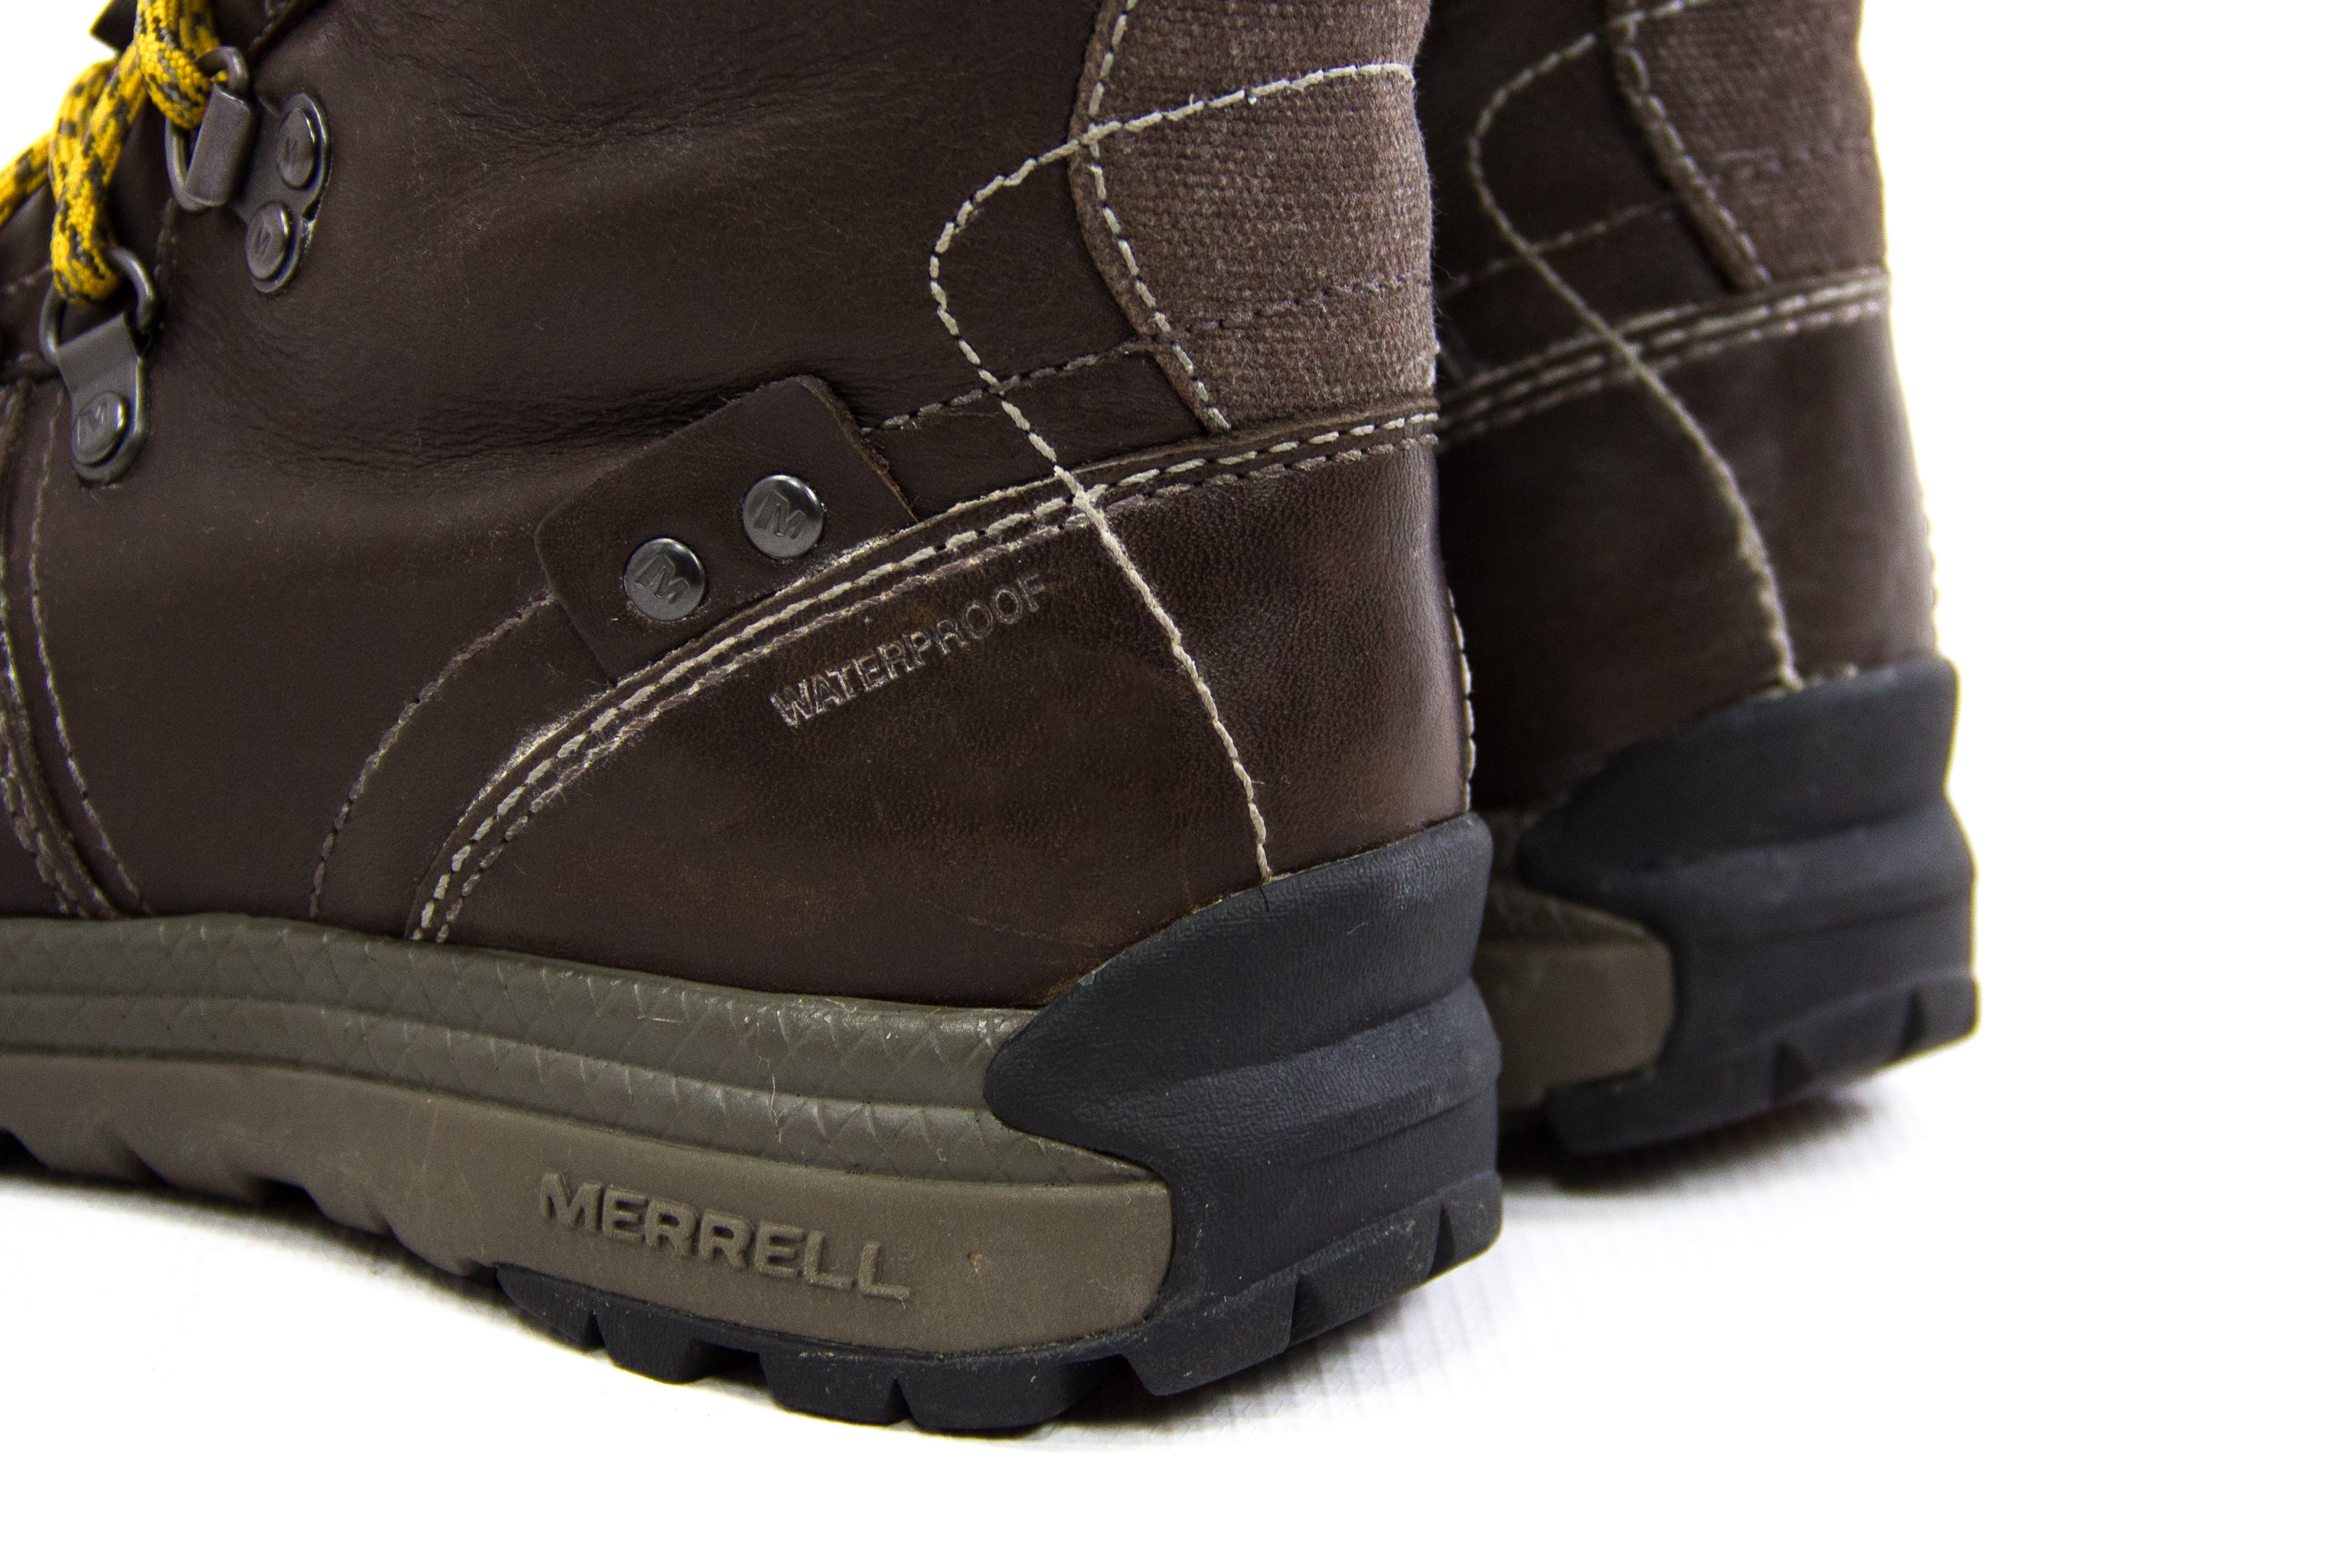 Merrell Natalya Waterproof Winter Hiking Boots US 7.5 - secondfirst